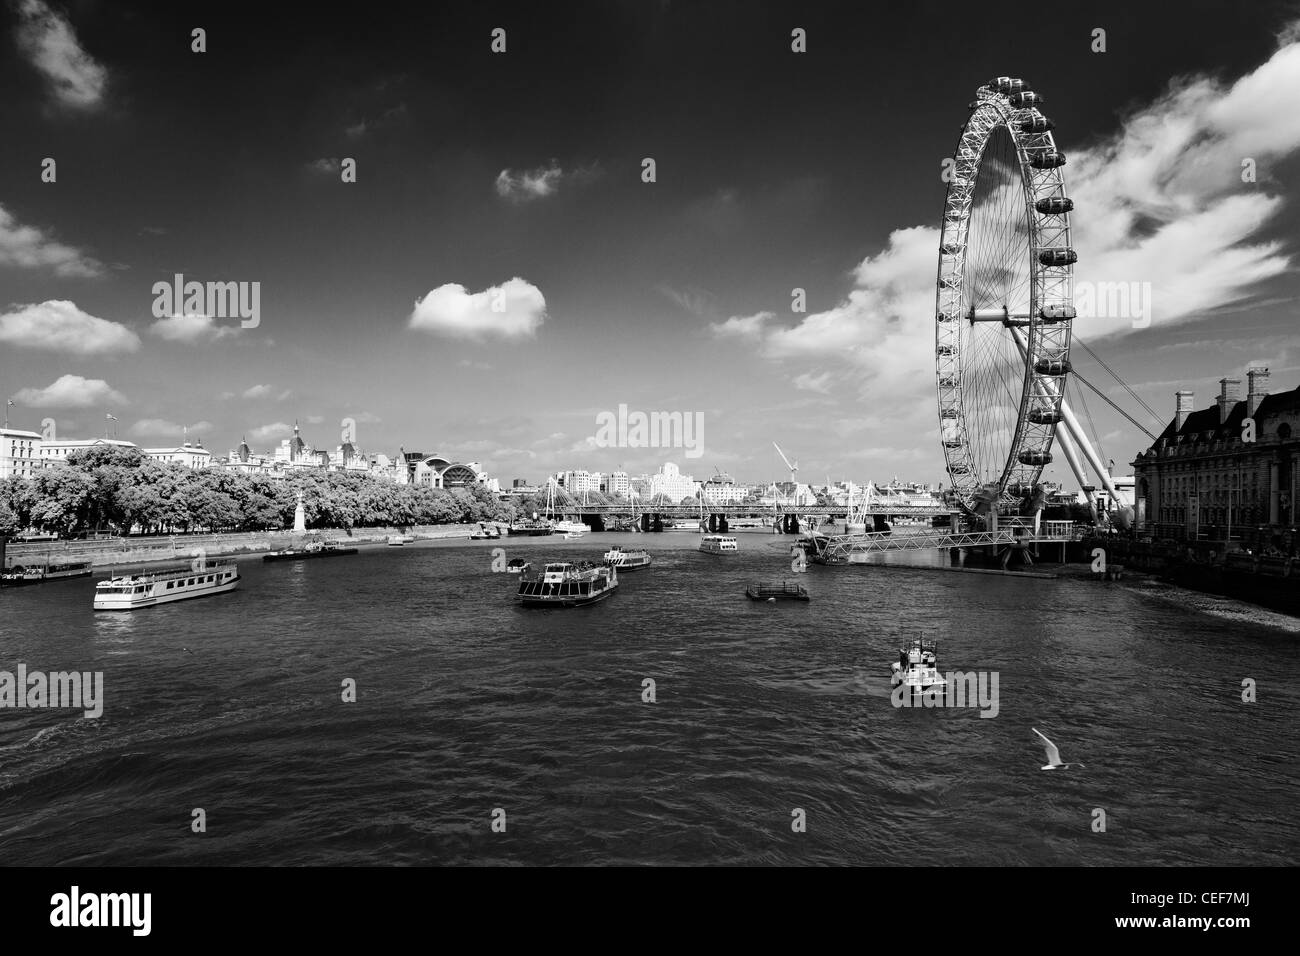 The London Eye with Charing Cross Station and Hungerford Bridge in the background, taken from the a boat on the - Stock Image